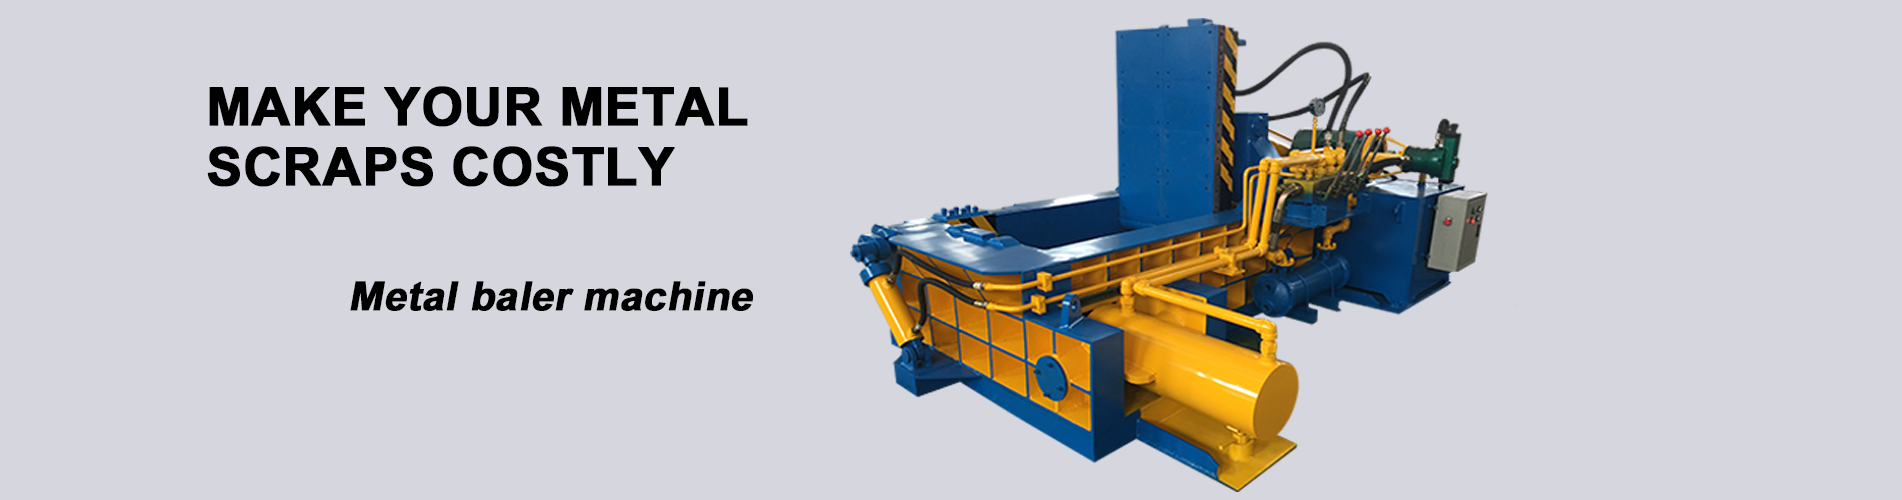 Metal baler machine banner